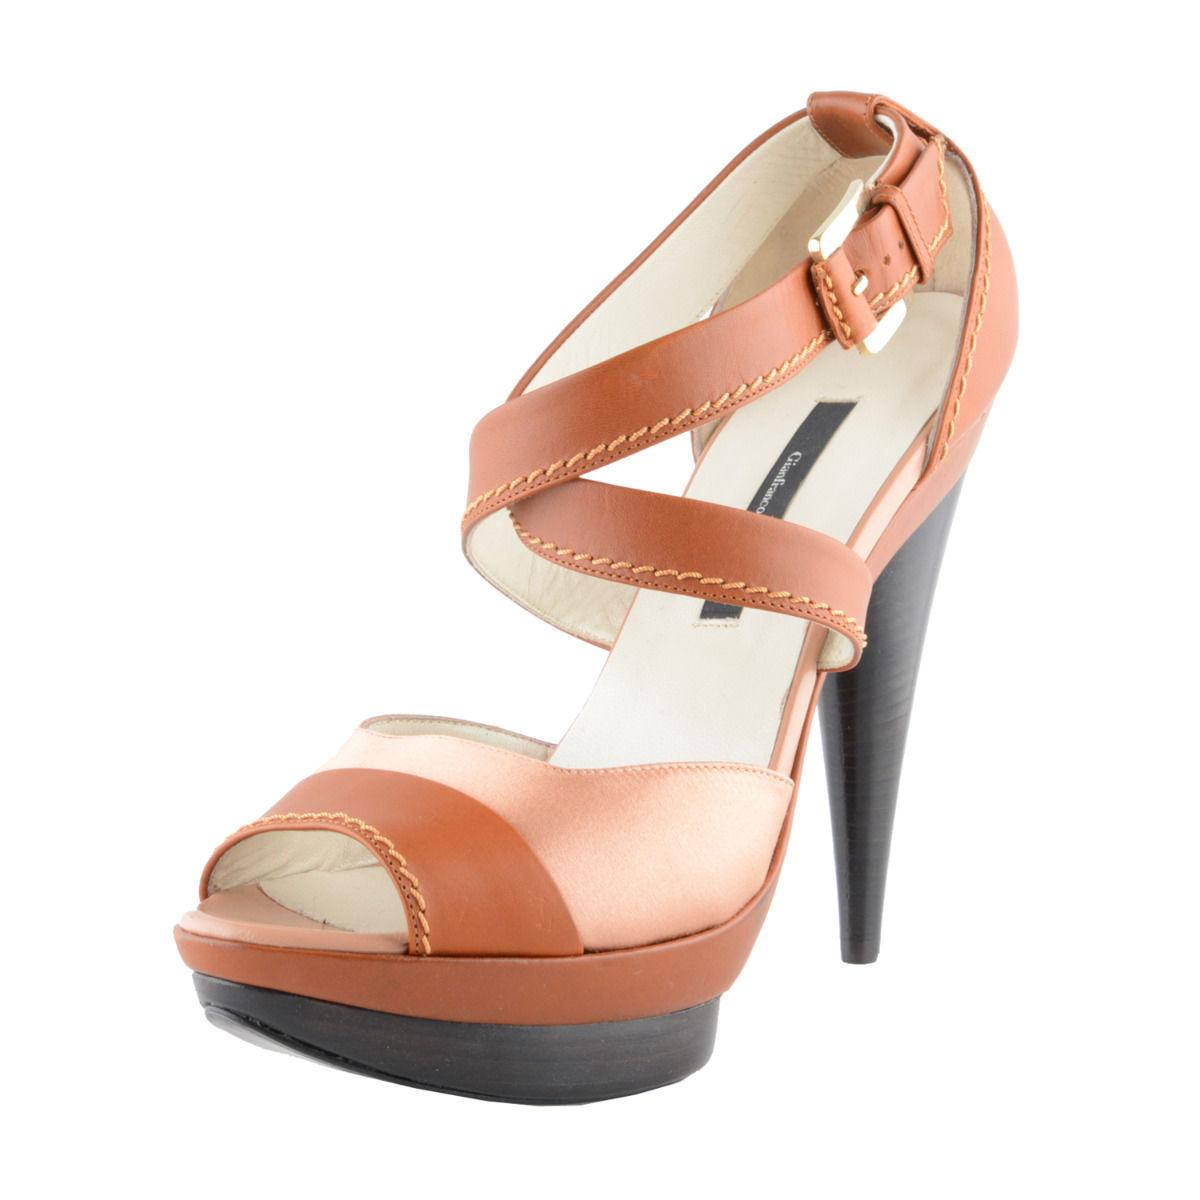 footlocker Gianfranco Ferre T-Strap Platform Sandals with mastercard cheap price big discount shopping online high quality sale pay with visa UY6oUkYA8